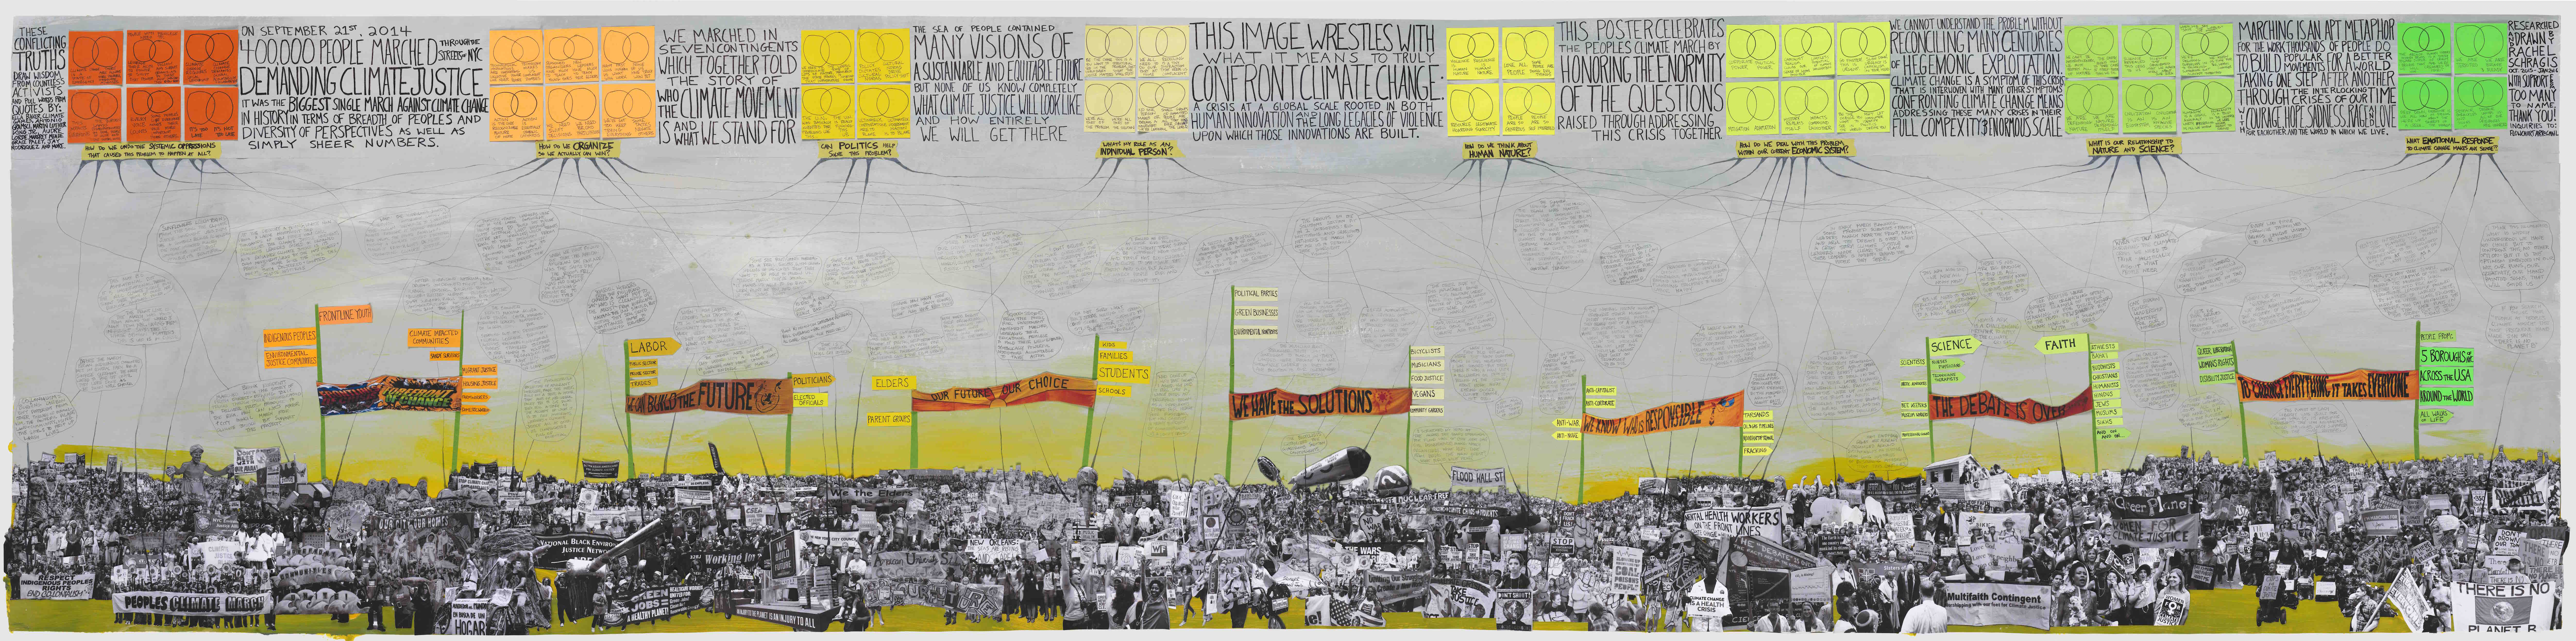 Art for Climate Justice